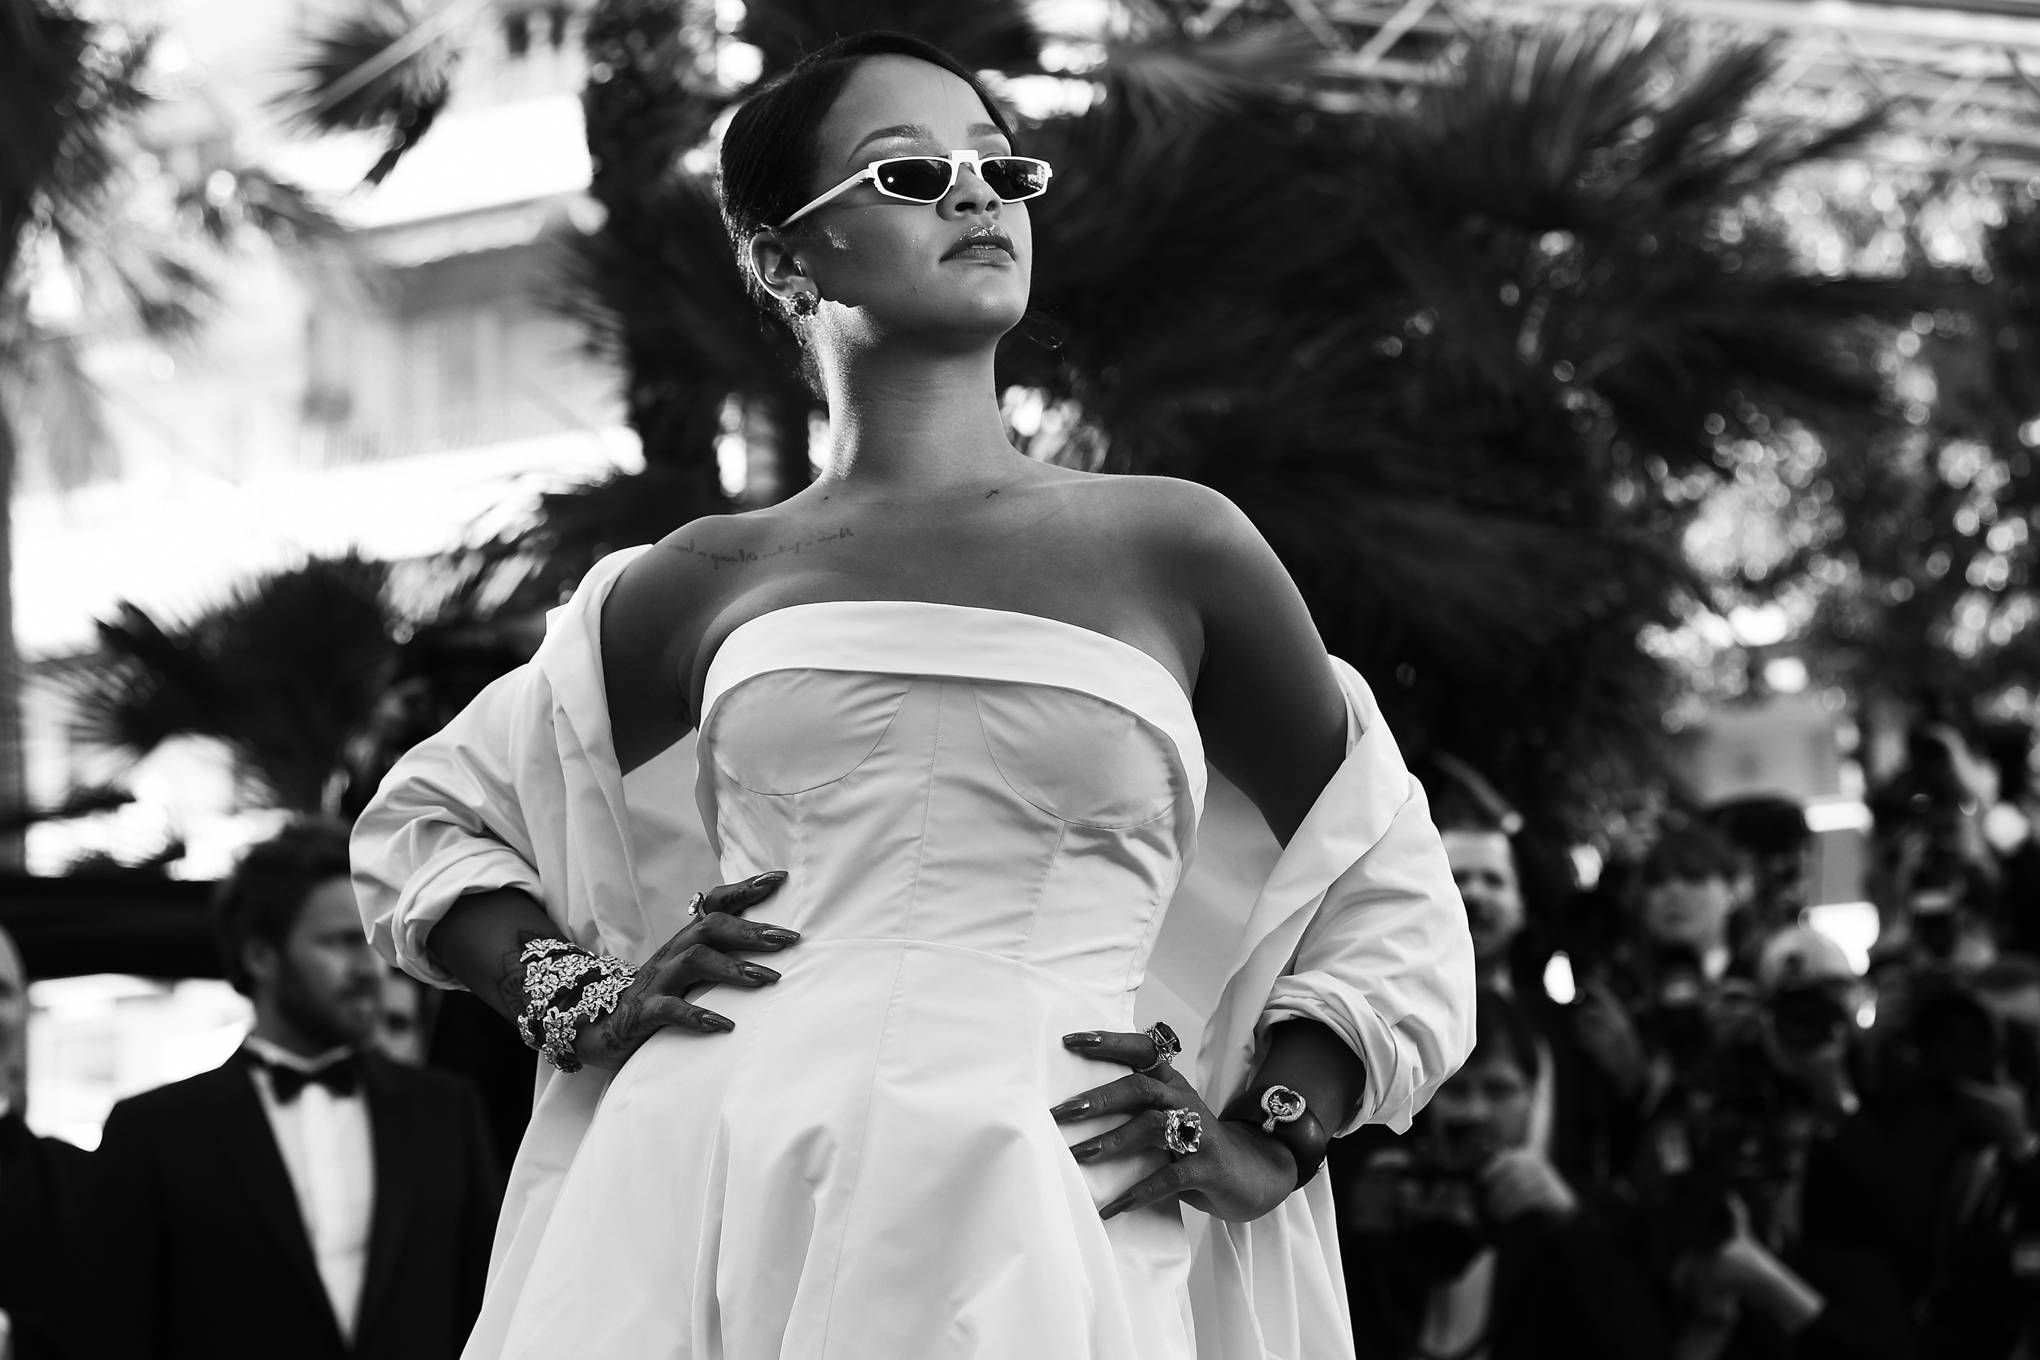 ae5684bcde2 Rihanna interview on Barbados